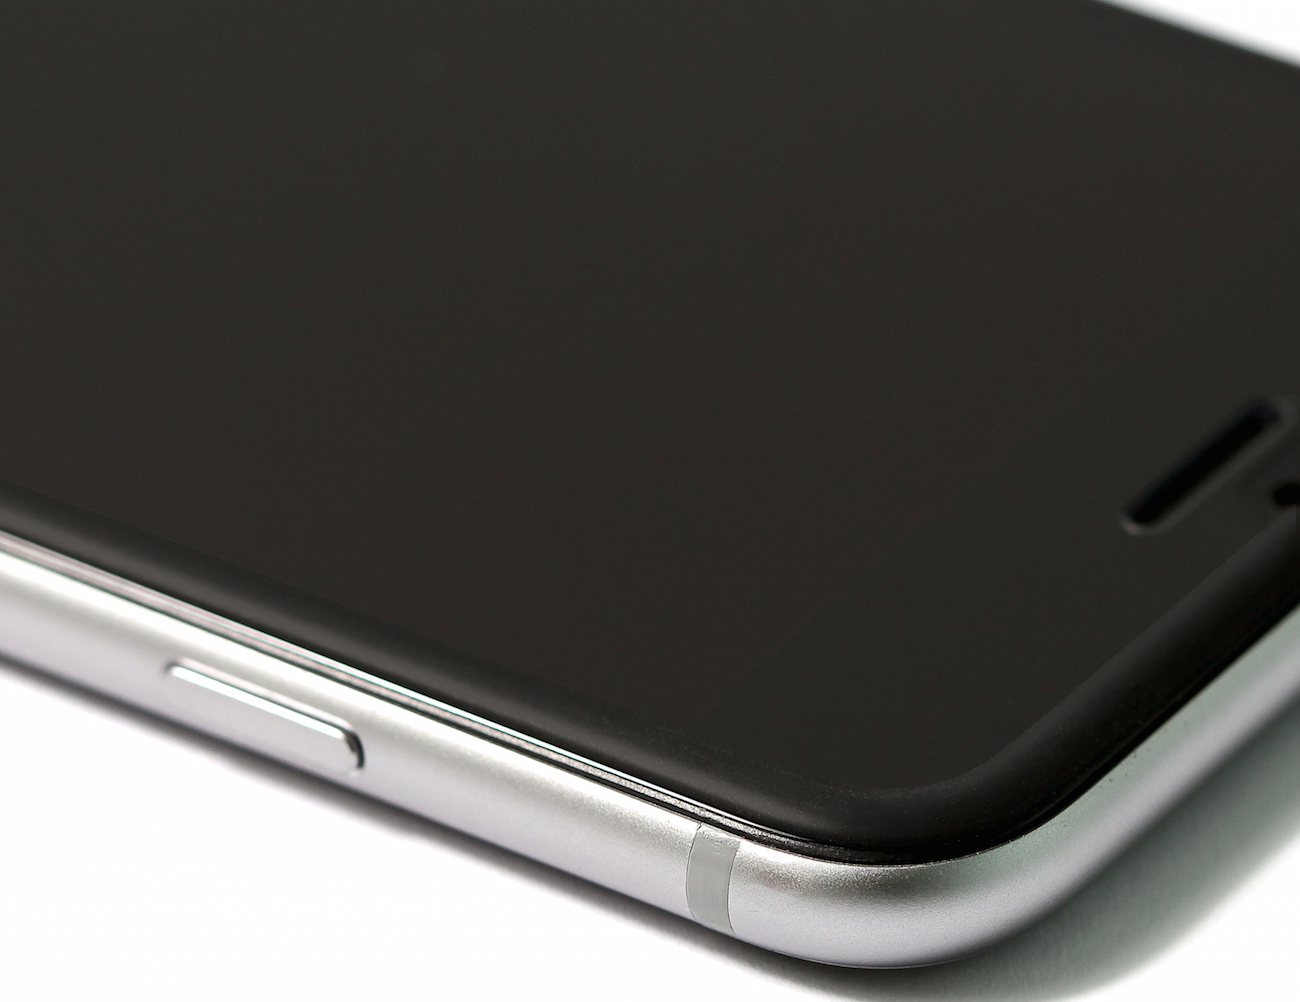 ITG Edge: Glass x Silicone Protector for iPhone 6